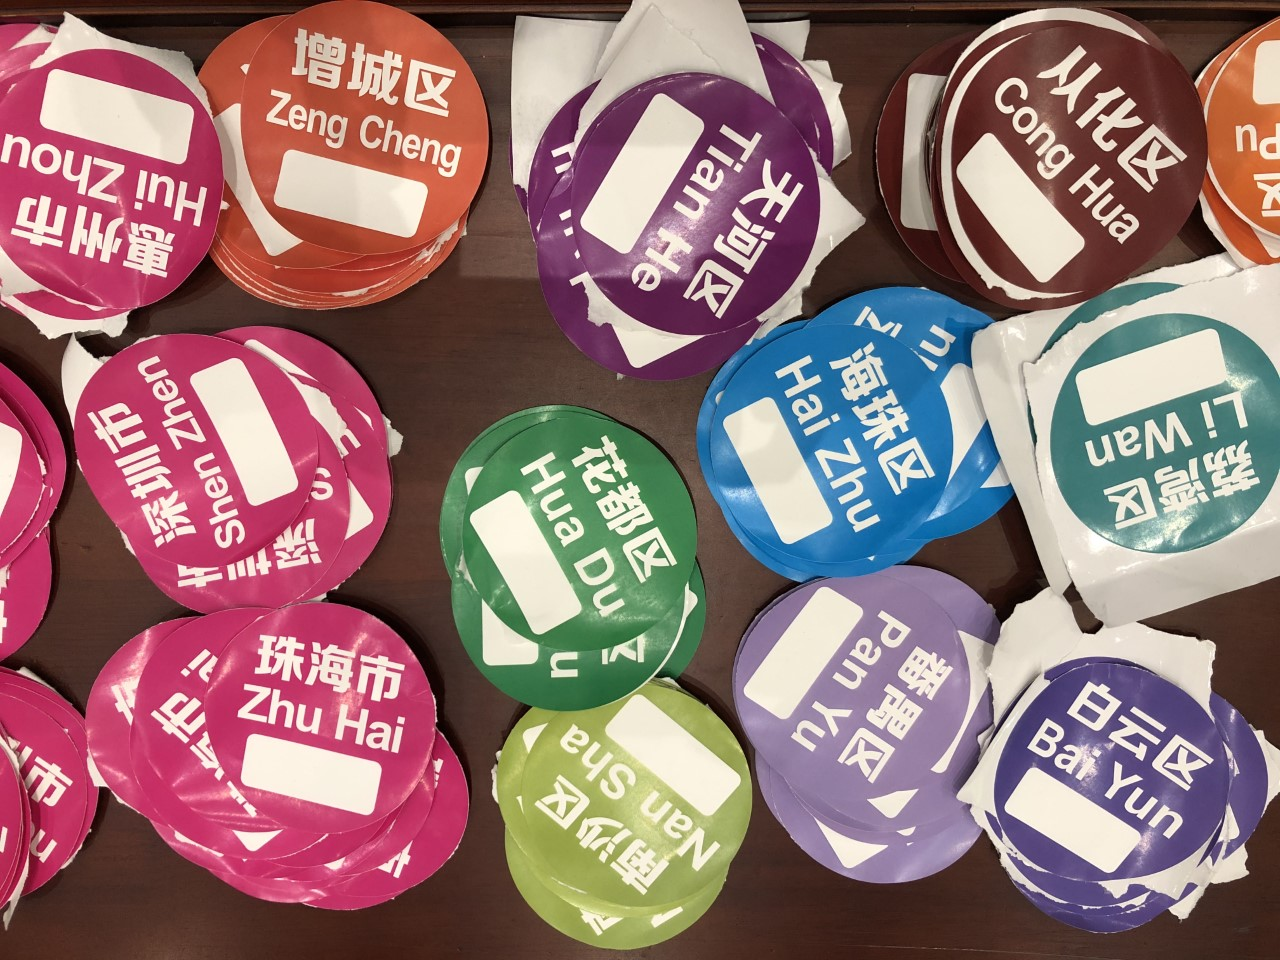 Guangzhou airport sorting stickers. Passengers are given destination labels to stick on their clothes. (Reporting Asean)